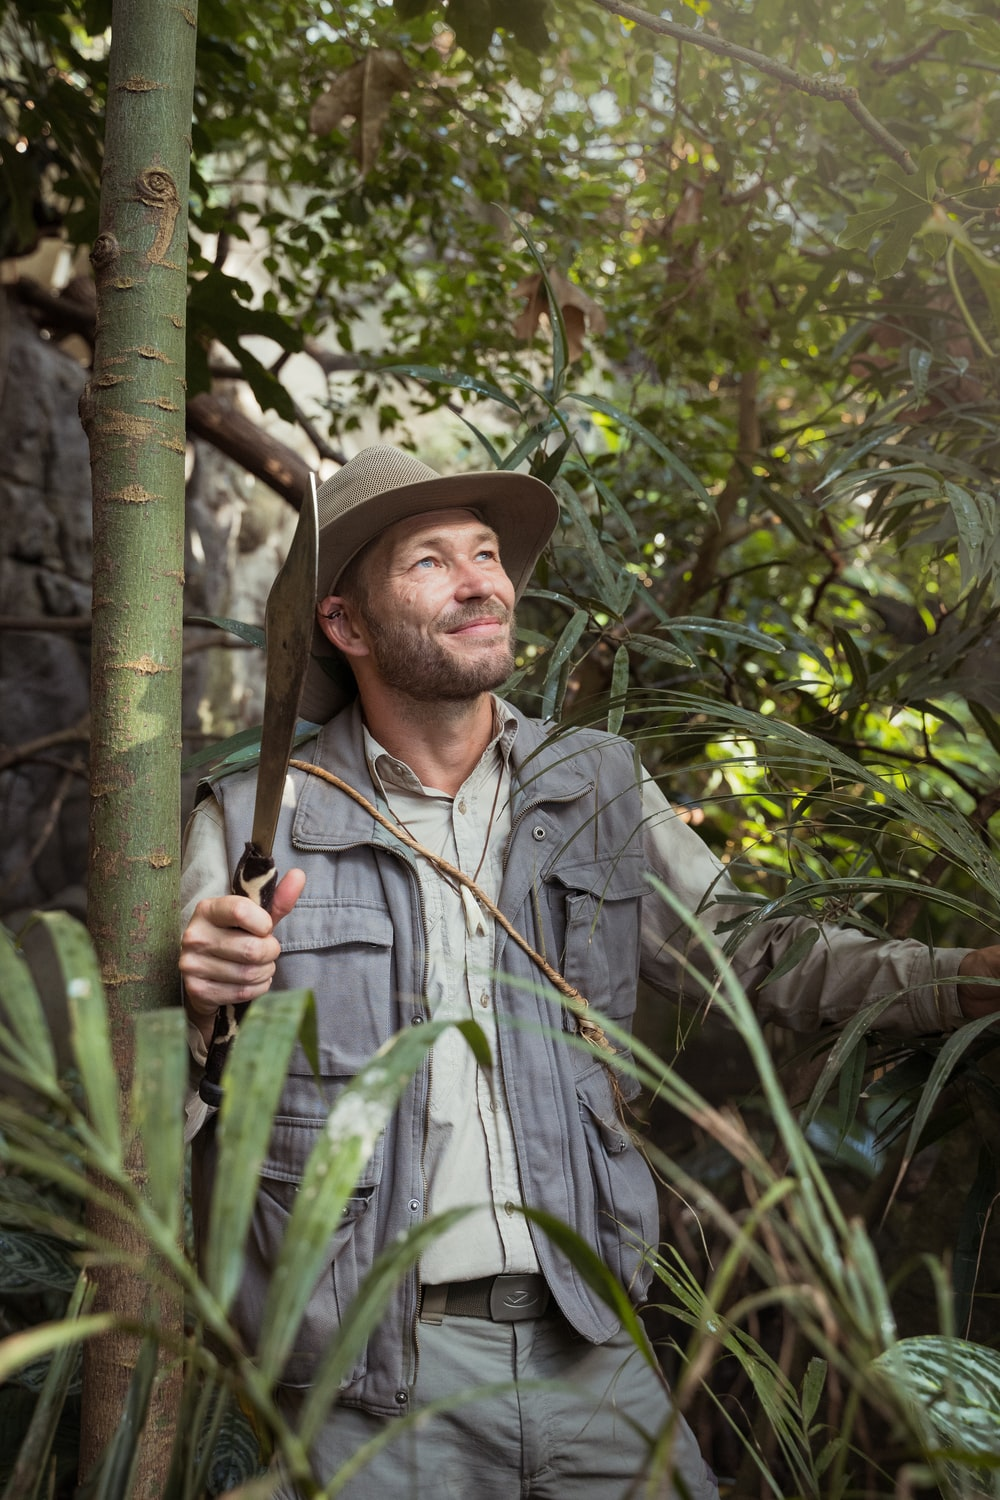 man in gray button up shirt holding green bamboo stick